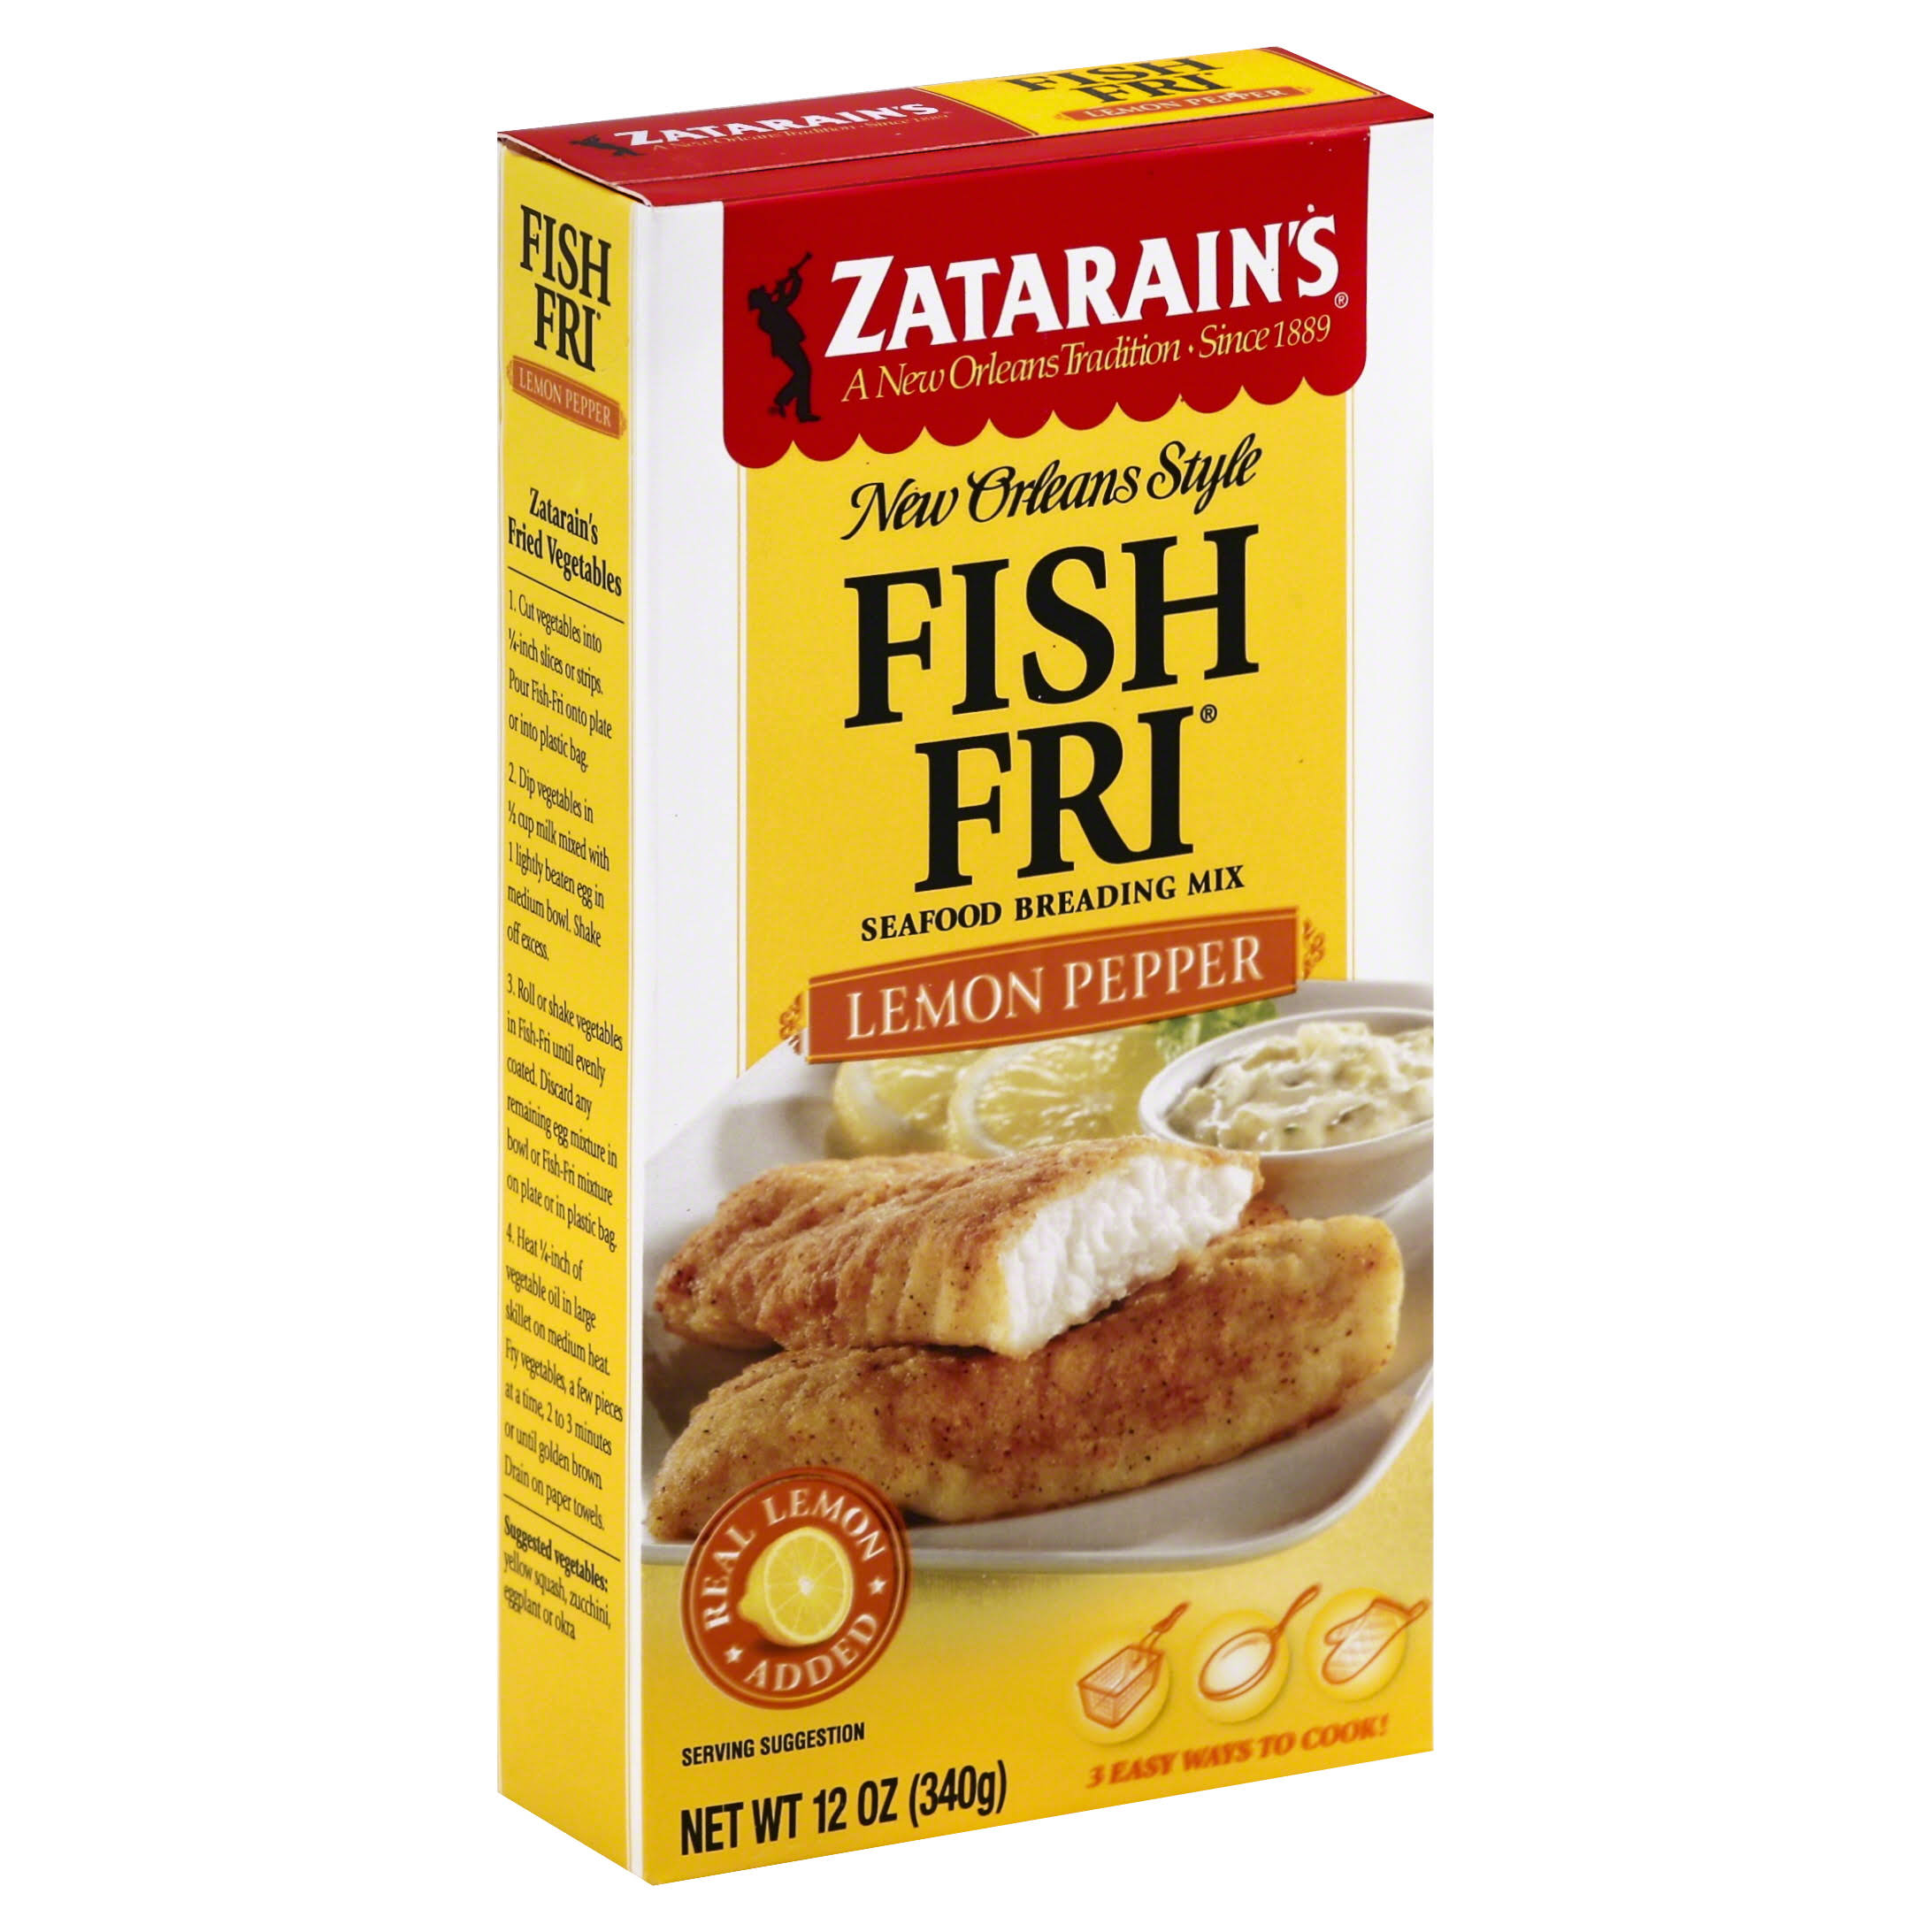 Zatarain's New Orleans Style Fish Fri Seafood Breading Mix - Lemon Pepper, 12oz